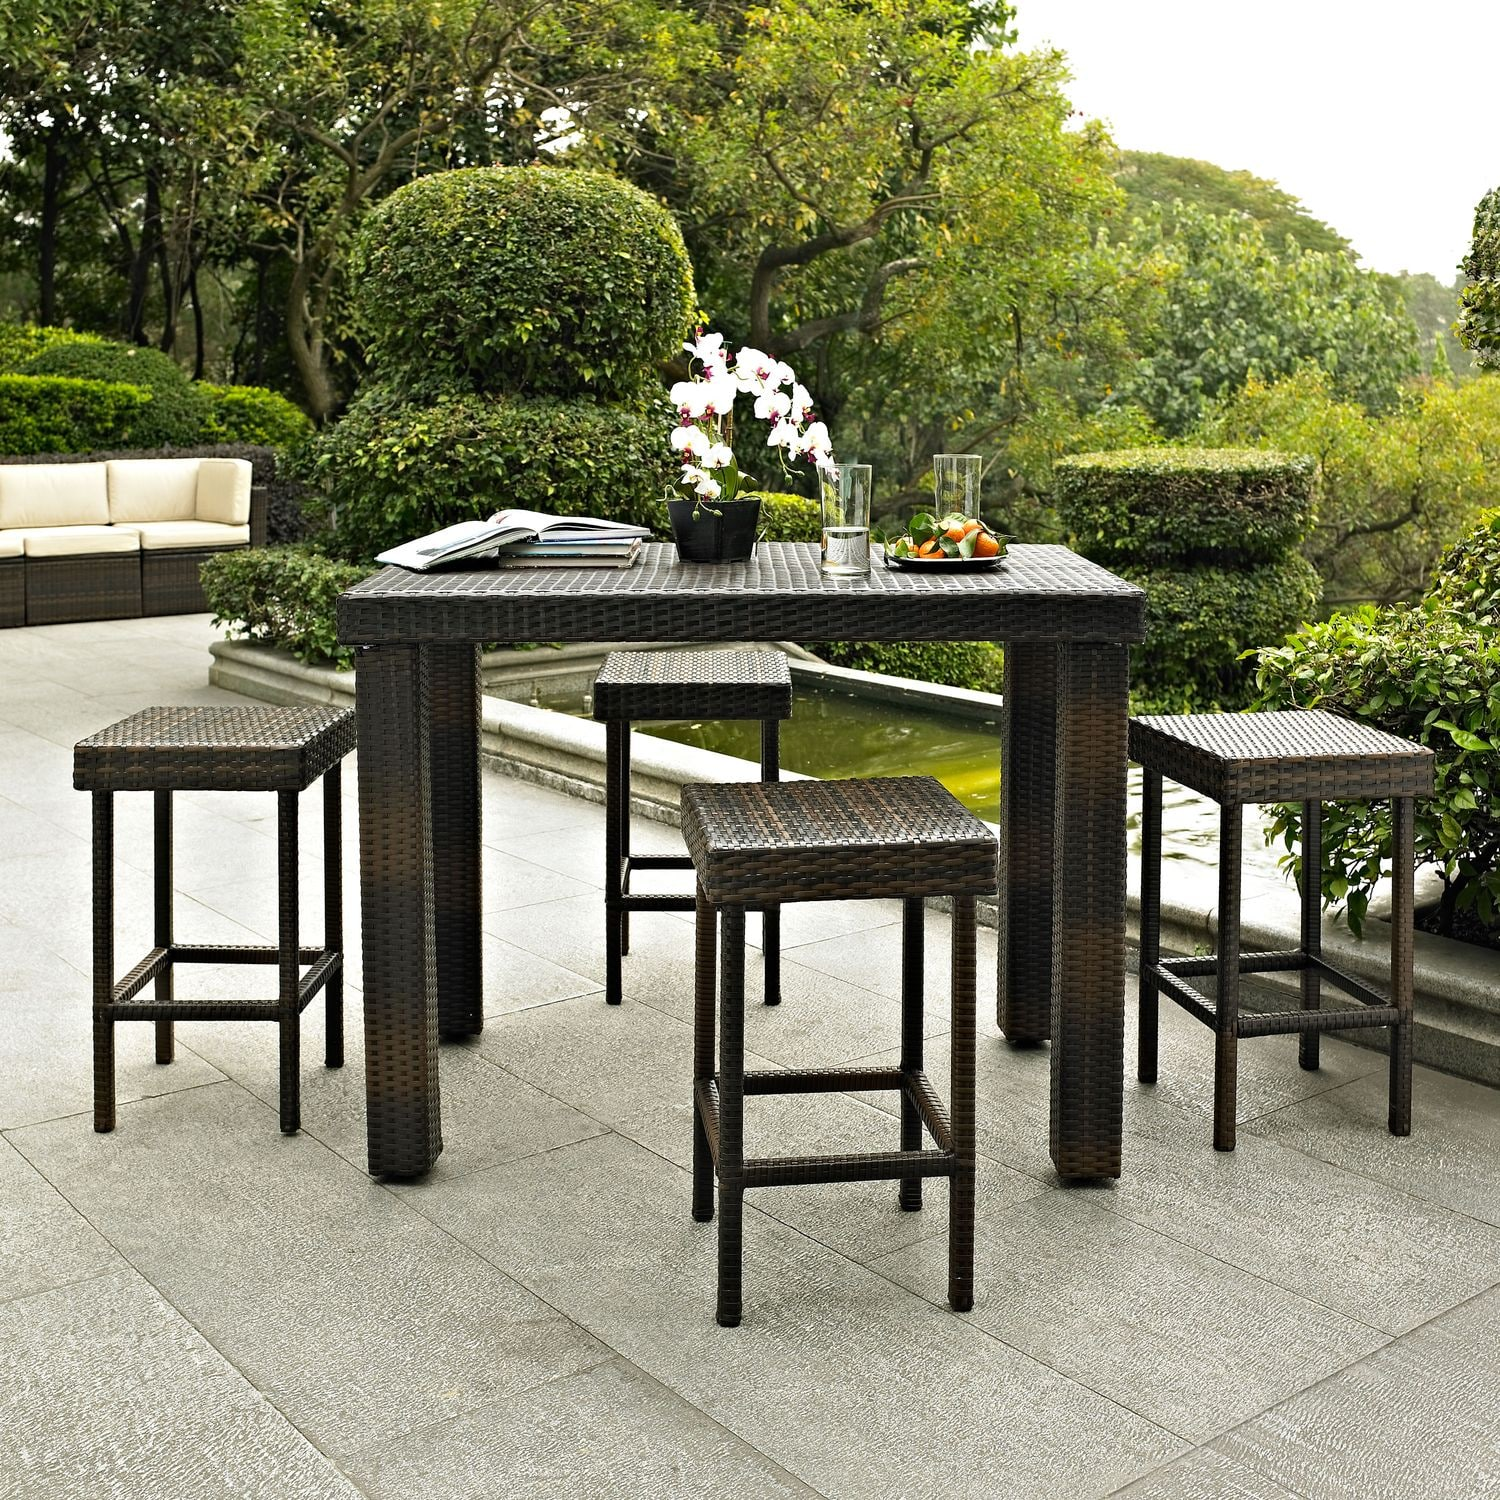 Outdoor furniture aldo outdoor counter height dining table and 4 stools brown